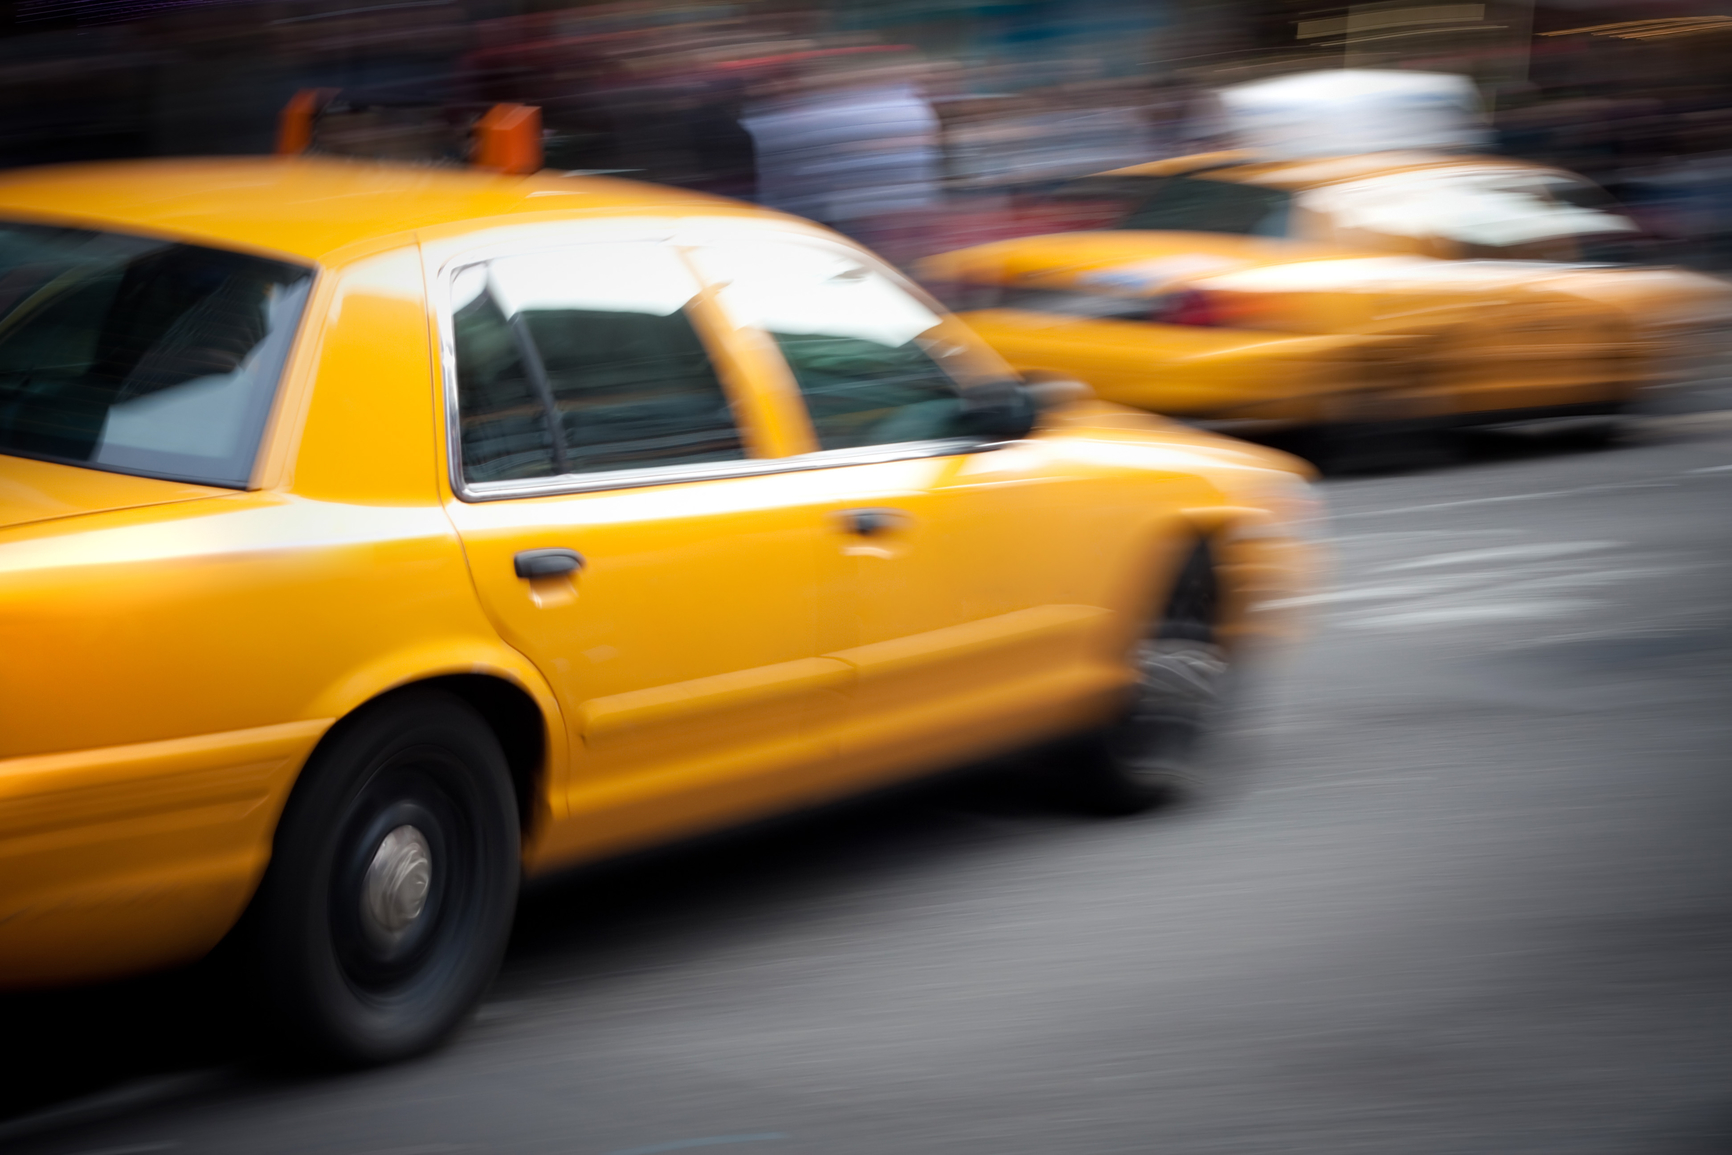 Supreme Judicial Court of Massachusetts ruled against a group of taxicab drivers